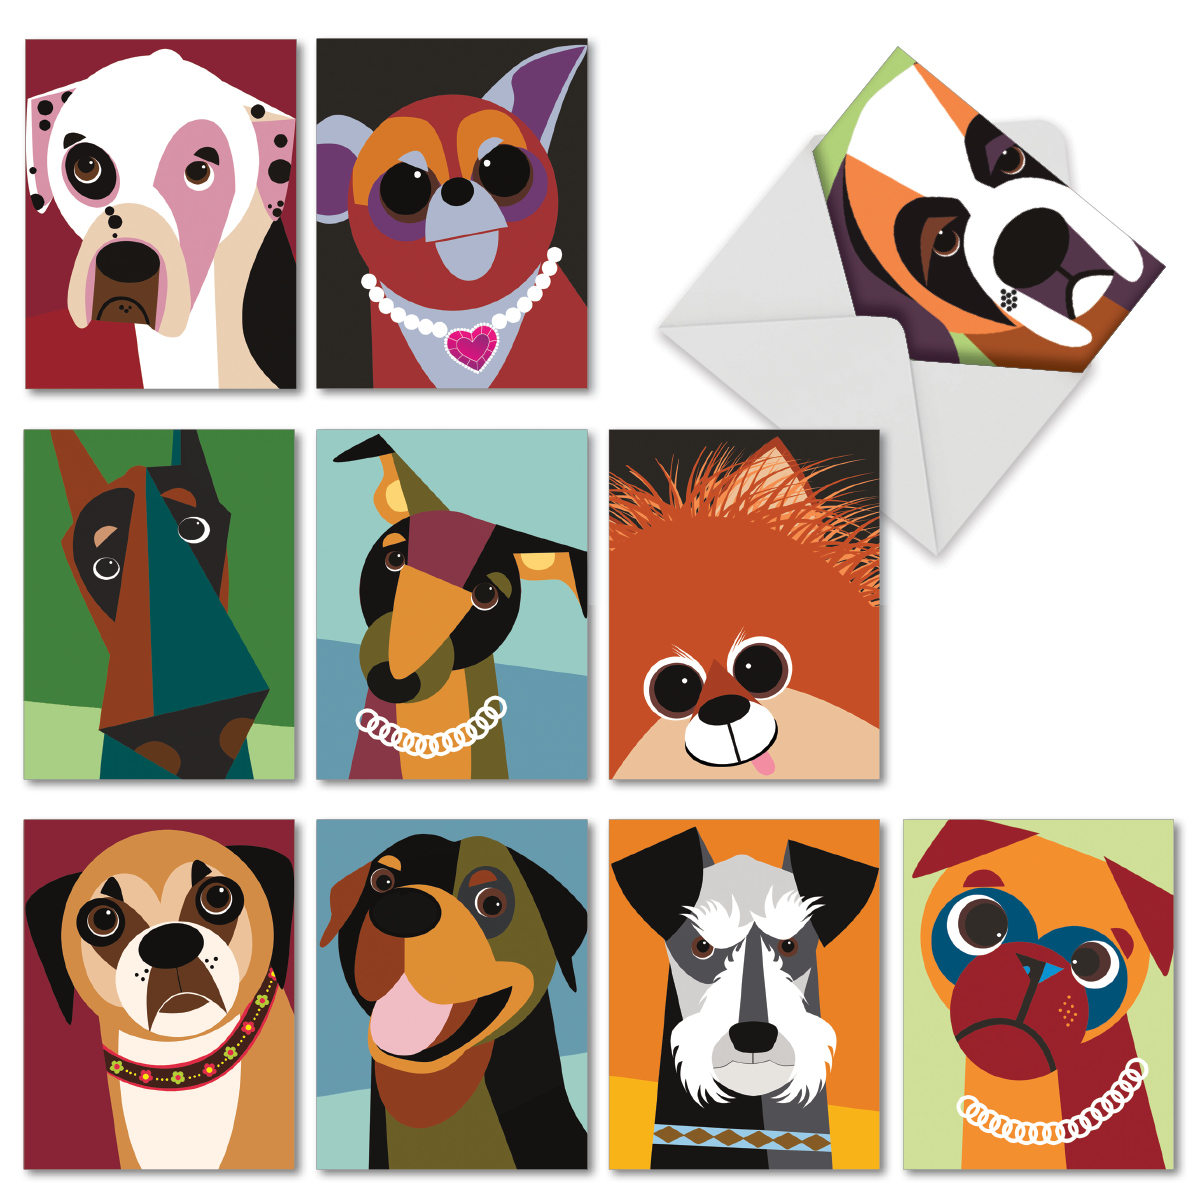 'M6632OCB CUBIC CANINES' 10 Assorted All Occasions Notecards Featuring Funky Portraits of Best Loved Dog Friends, with Envelopes by The Best Card Company